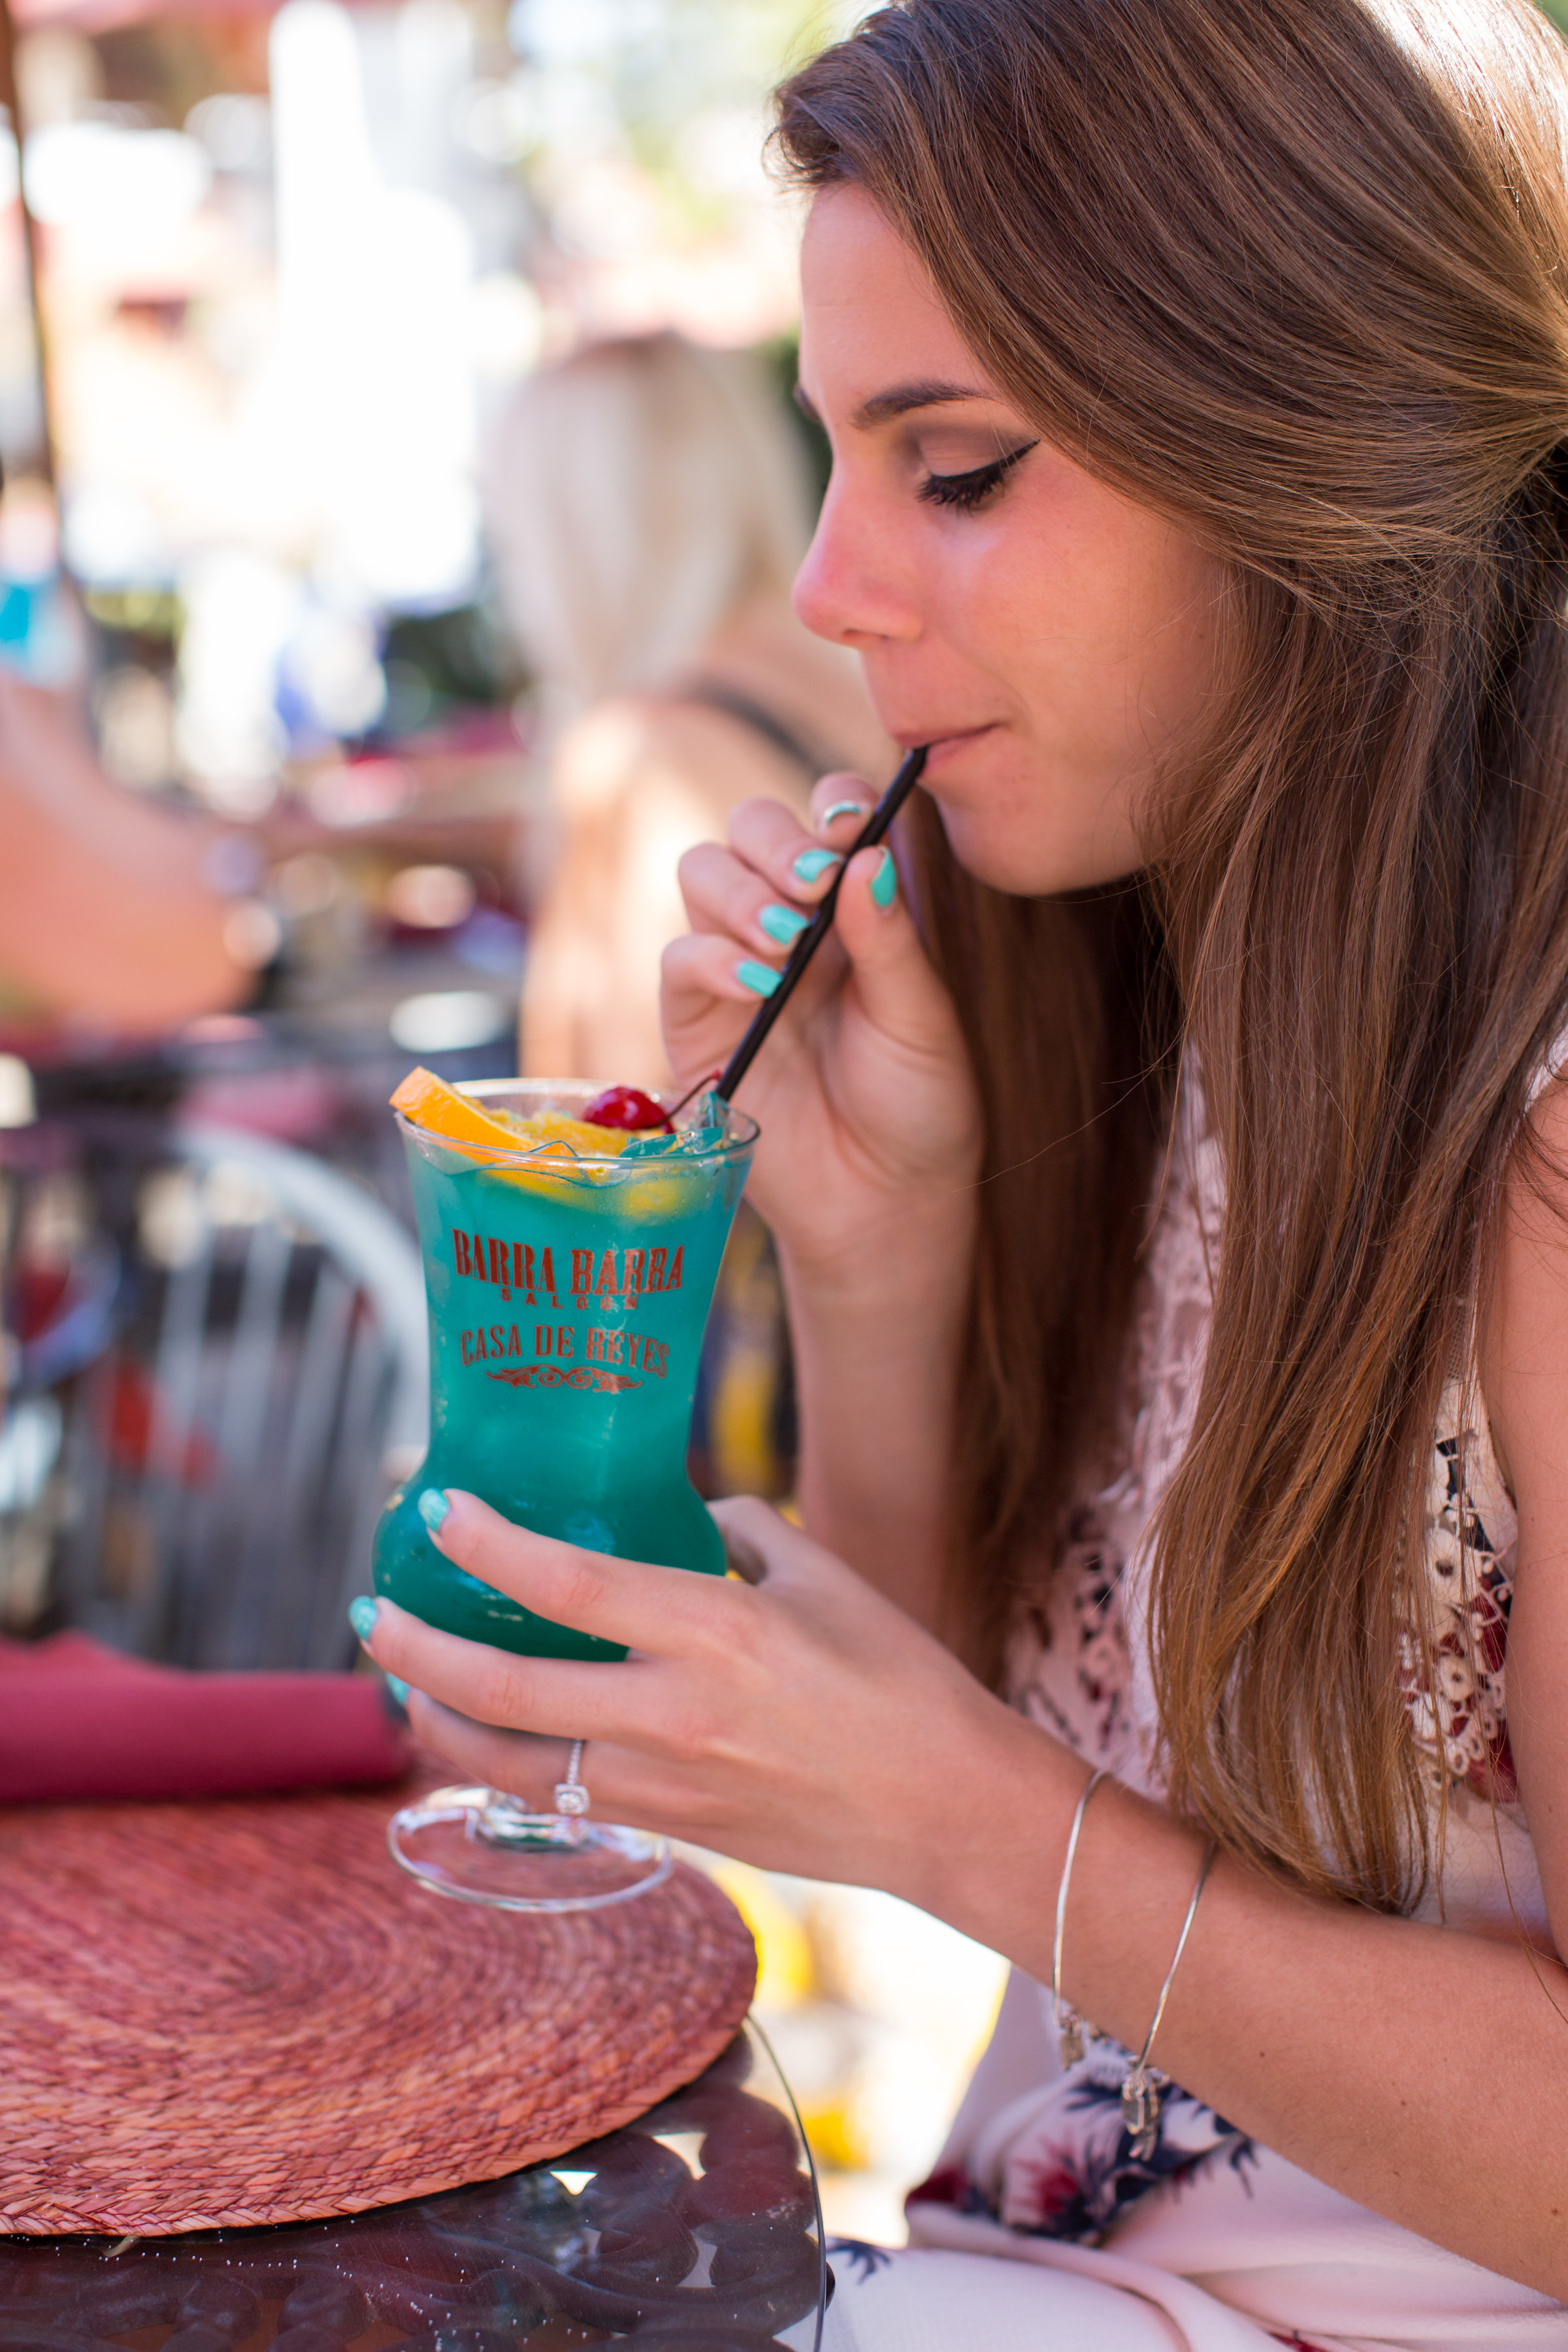 Old Town San Diego Travel Guide! Make sure to check out these spots when you visit old town!